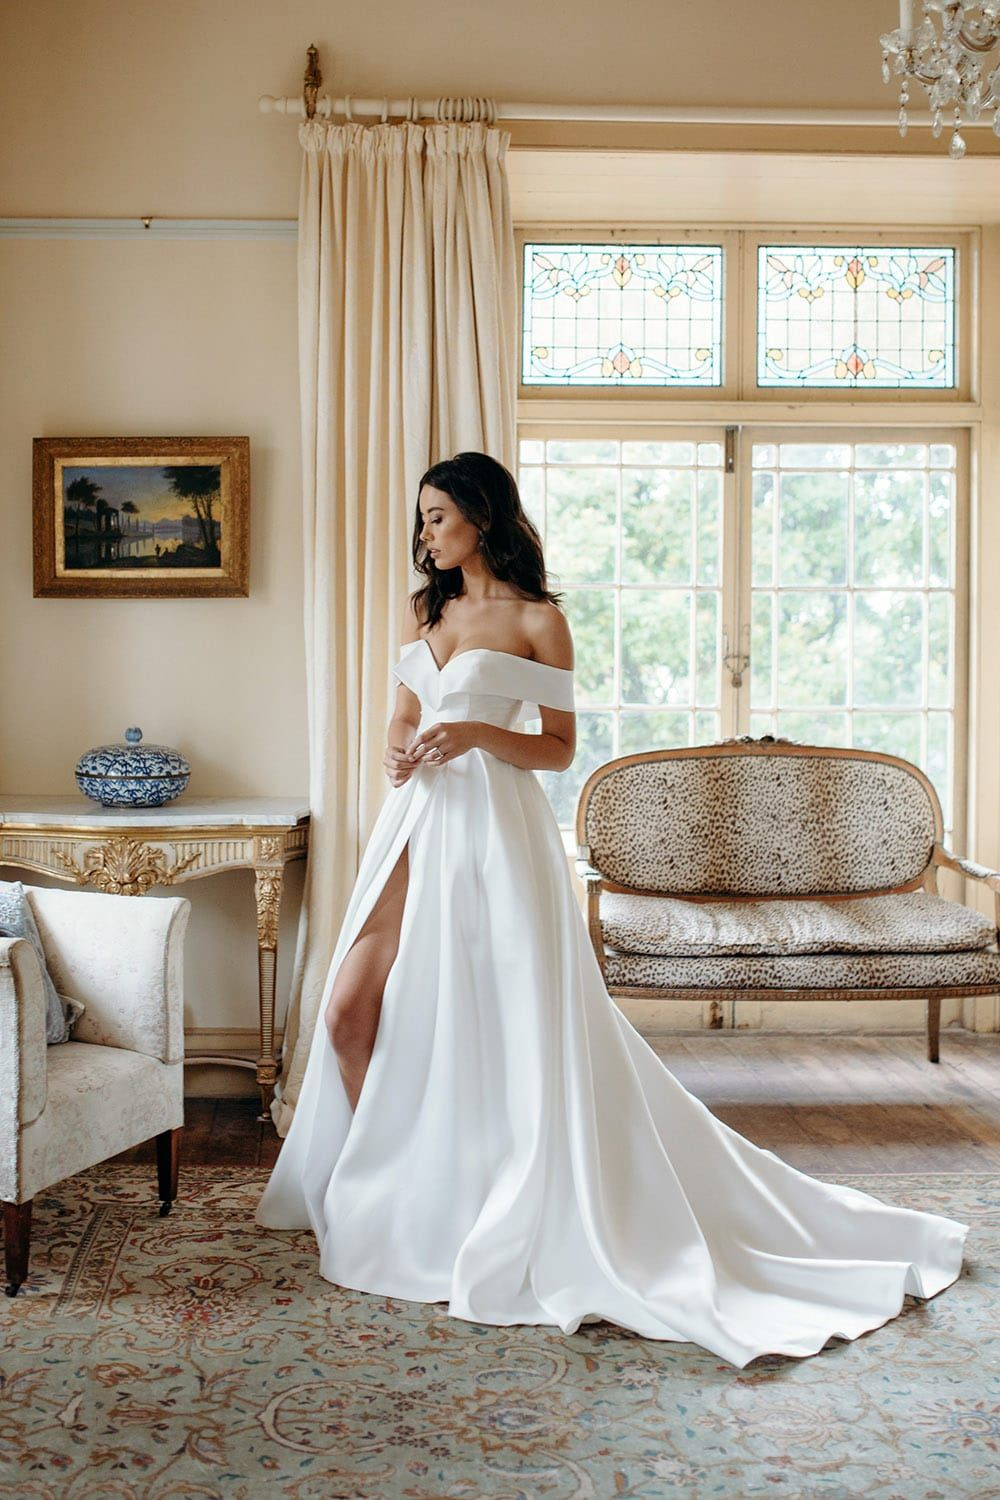 Francois Wedding Dress Nz Hera Couture Wedding Dresses Nz Dresses Nz Fitted Wedding Dress